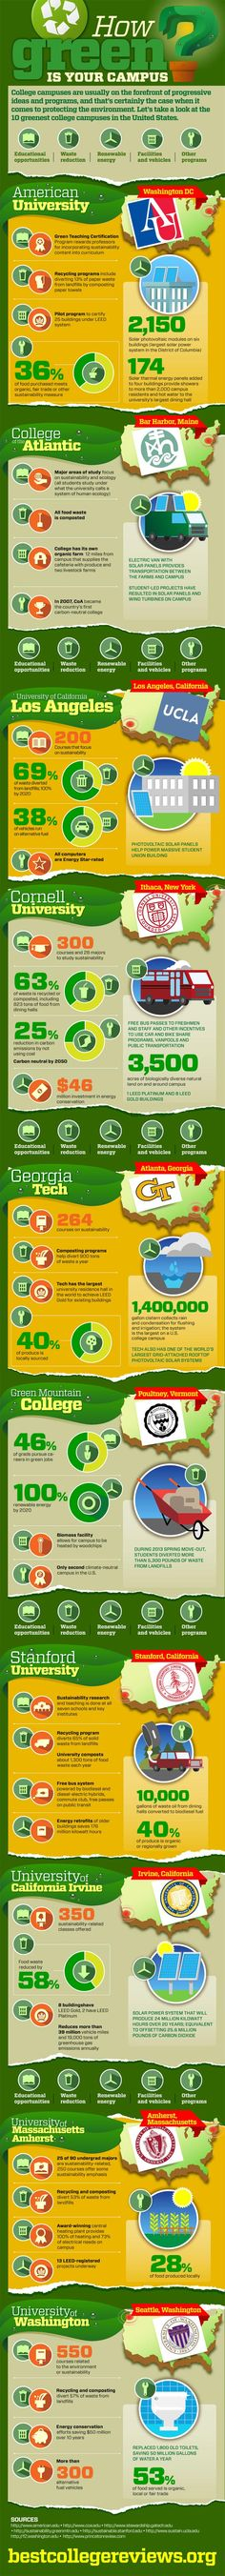 #INFOgraphic > 10 Greenest Campuses in US: Quite self-explanatory, on this graphic you will find 10 of the most revolutionary campuses across the US that have embraced green practices and technologies as for waste reduction, facilities, renewable energy etc.  under #AmericanUniversities, #Campus, #Composting, #Ecology, #GreenEnergy, #RenewableEnergy, #SolarEnergy, #Sustainability, #WasteManagement category